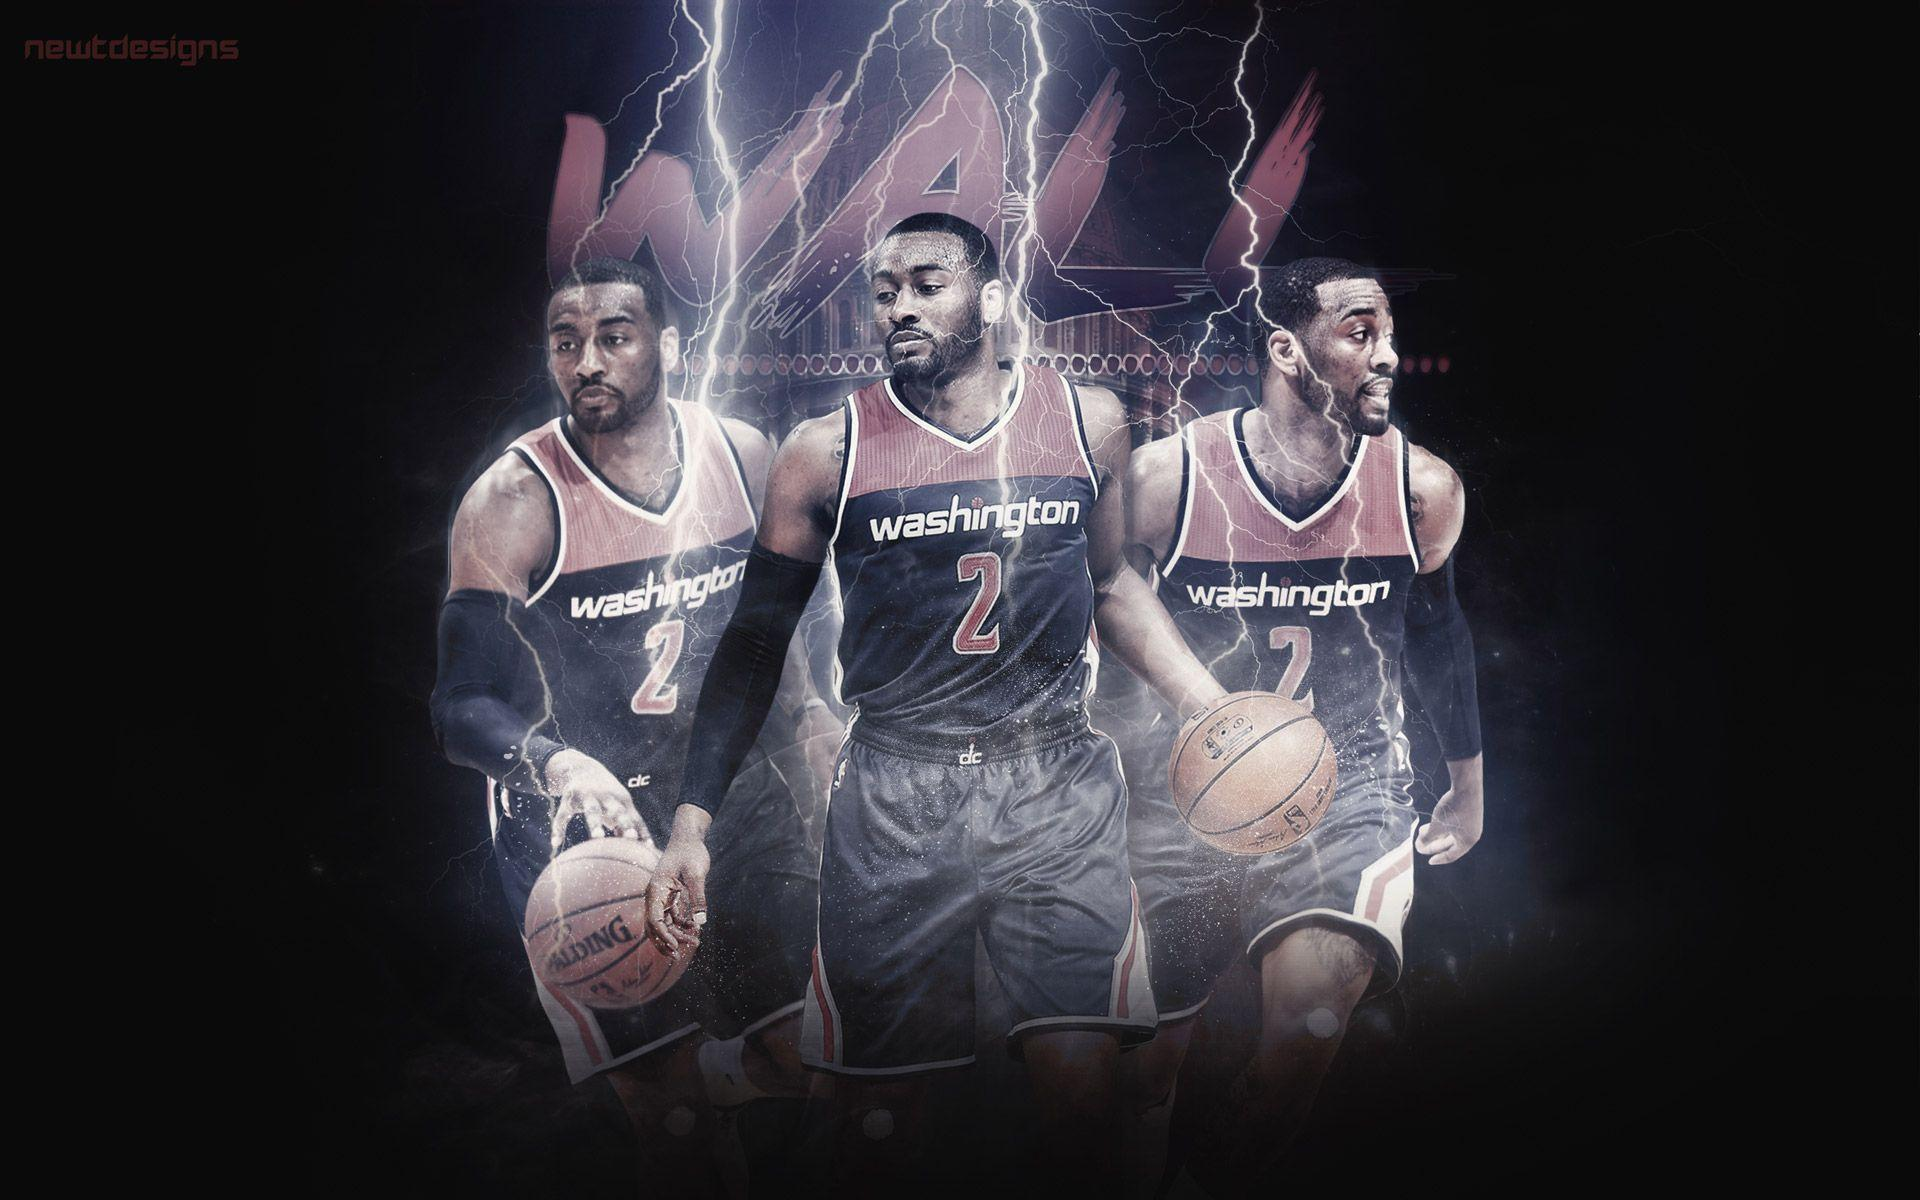 John Wall Wizards 2016 Wallpaper | Basketball Wallpapers at ...